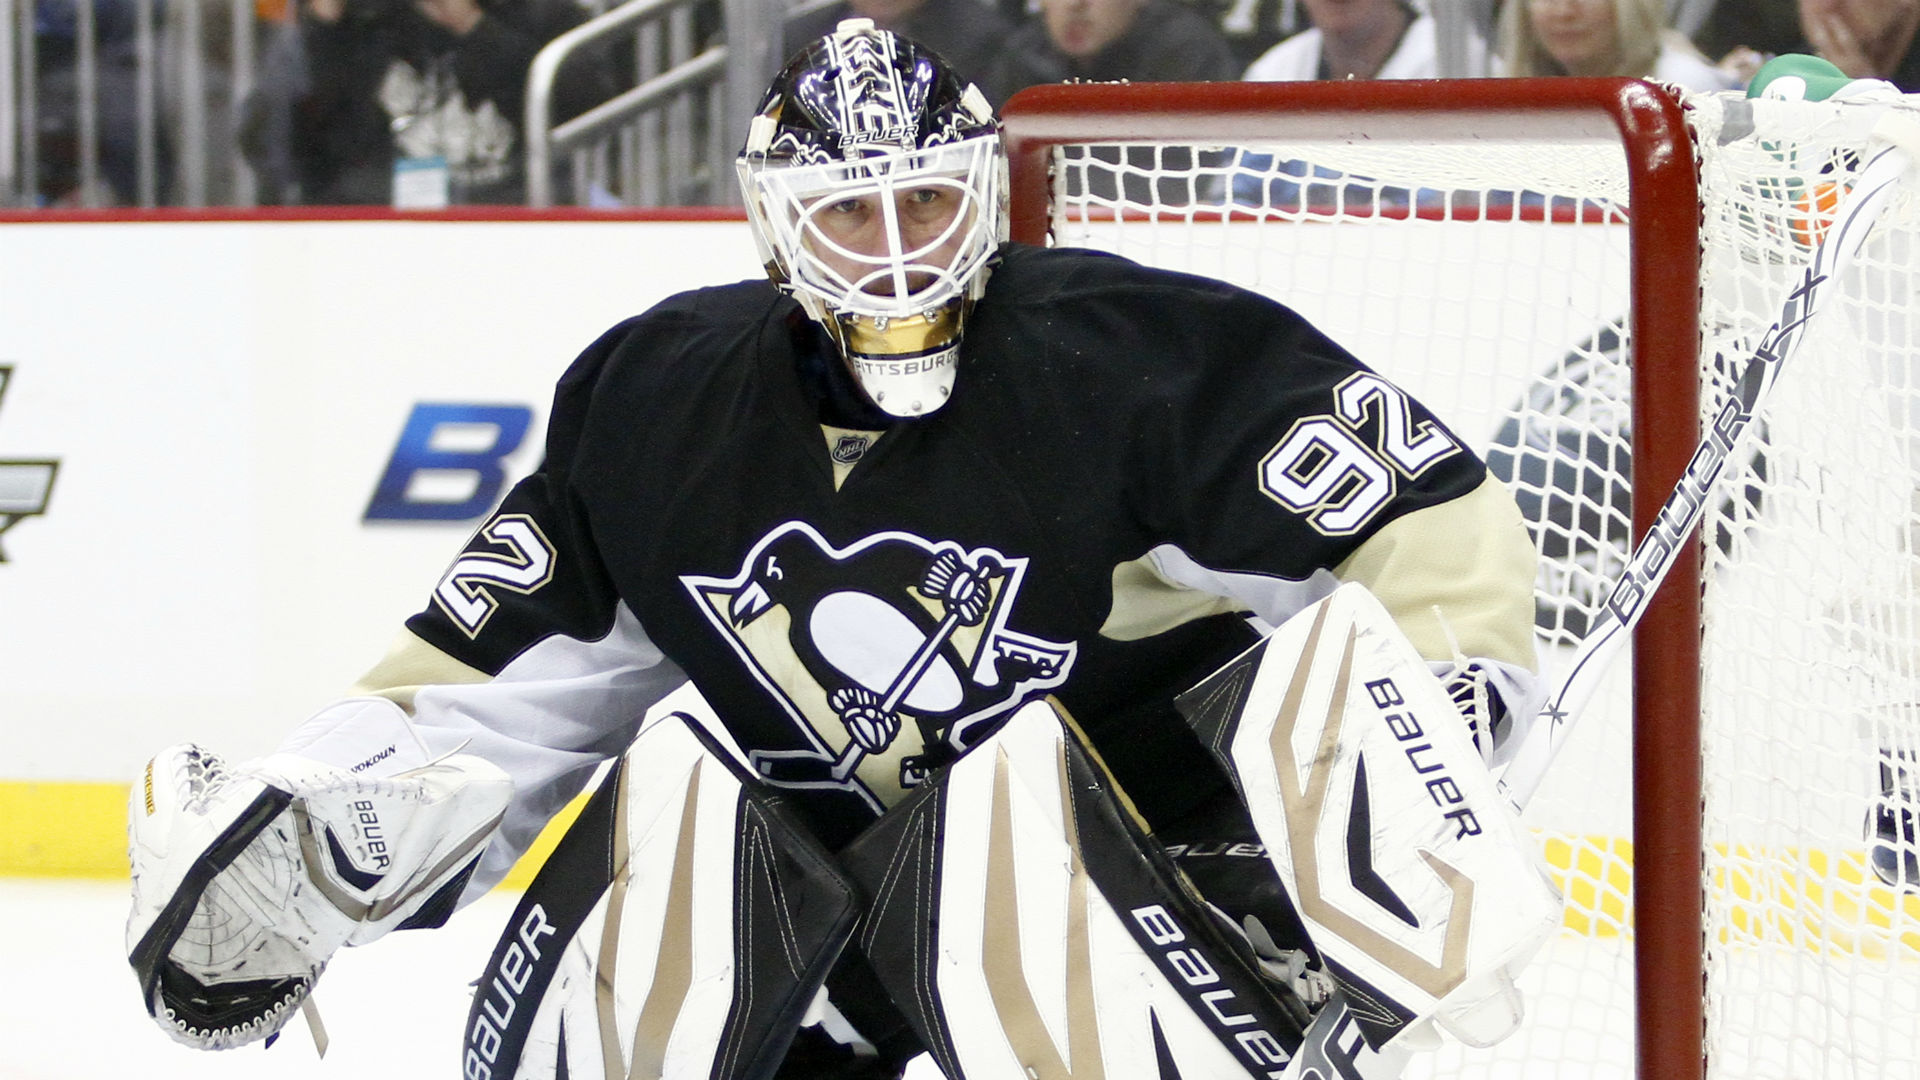 Tomas-Vokoun-121514-Getty-FTR.jpg